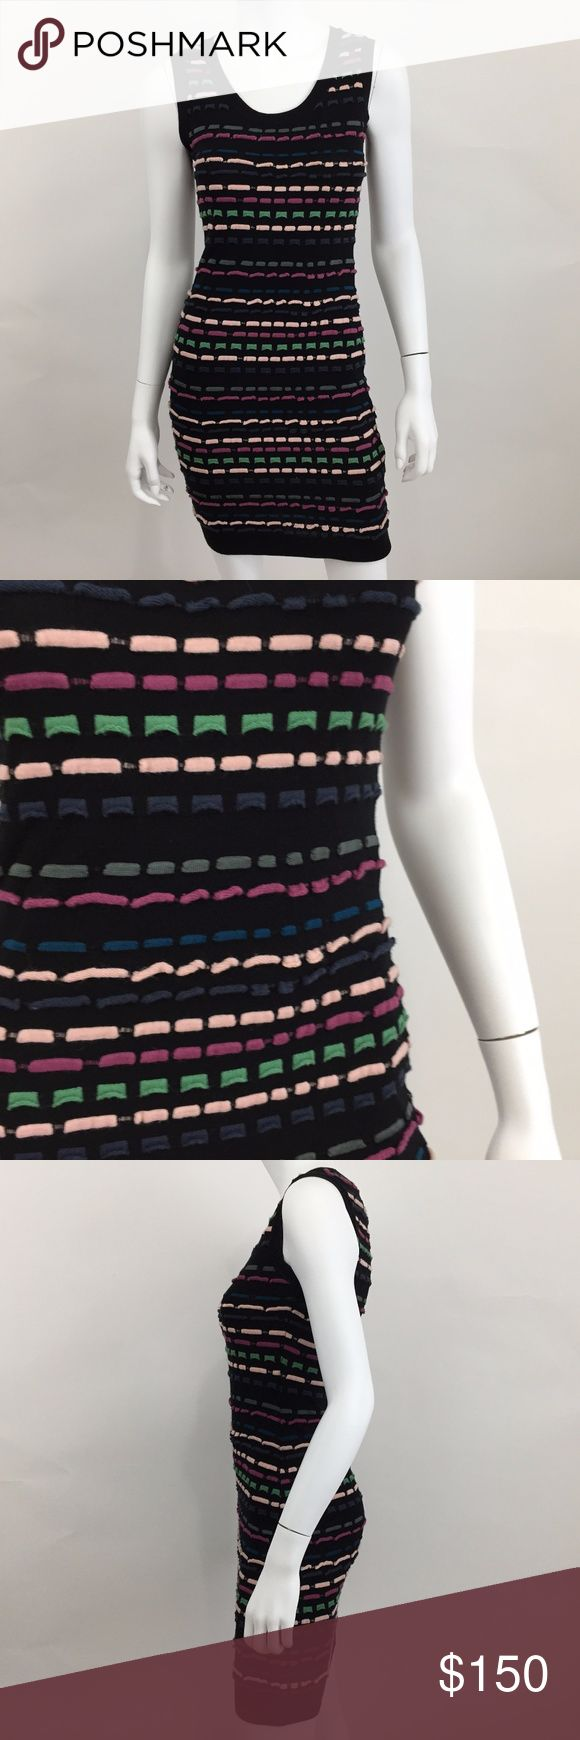 M Missoni 2 Black Wool Yarn Stripe Bodycon Dress VGUC - There is some very faint deodorant staining at underarm. Please see pic Measurements according to brand: Bust 32 Waist 24 Hips 34 #0409 M by Missoni Dresses